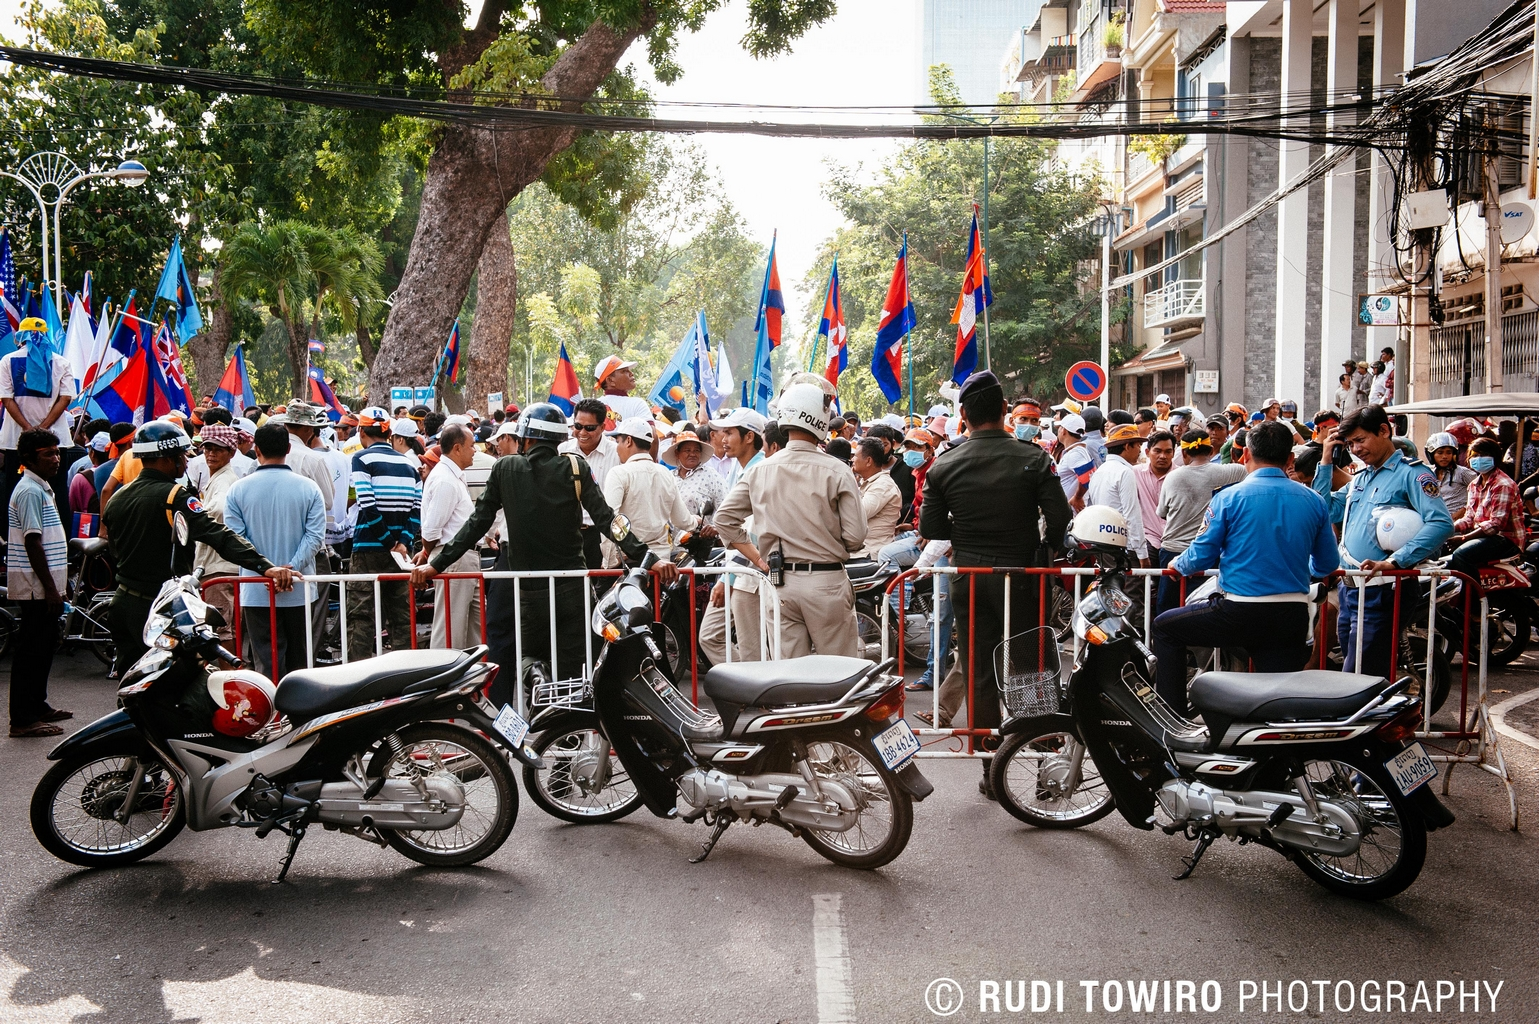 CNRP Peaceful Protest monitored by the Law Enforcement Authorities - 23 October 2013 - Photo: Rudi Towiro Photography